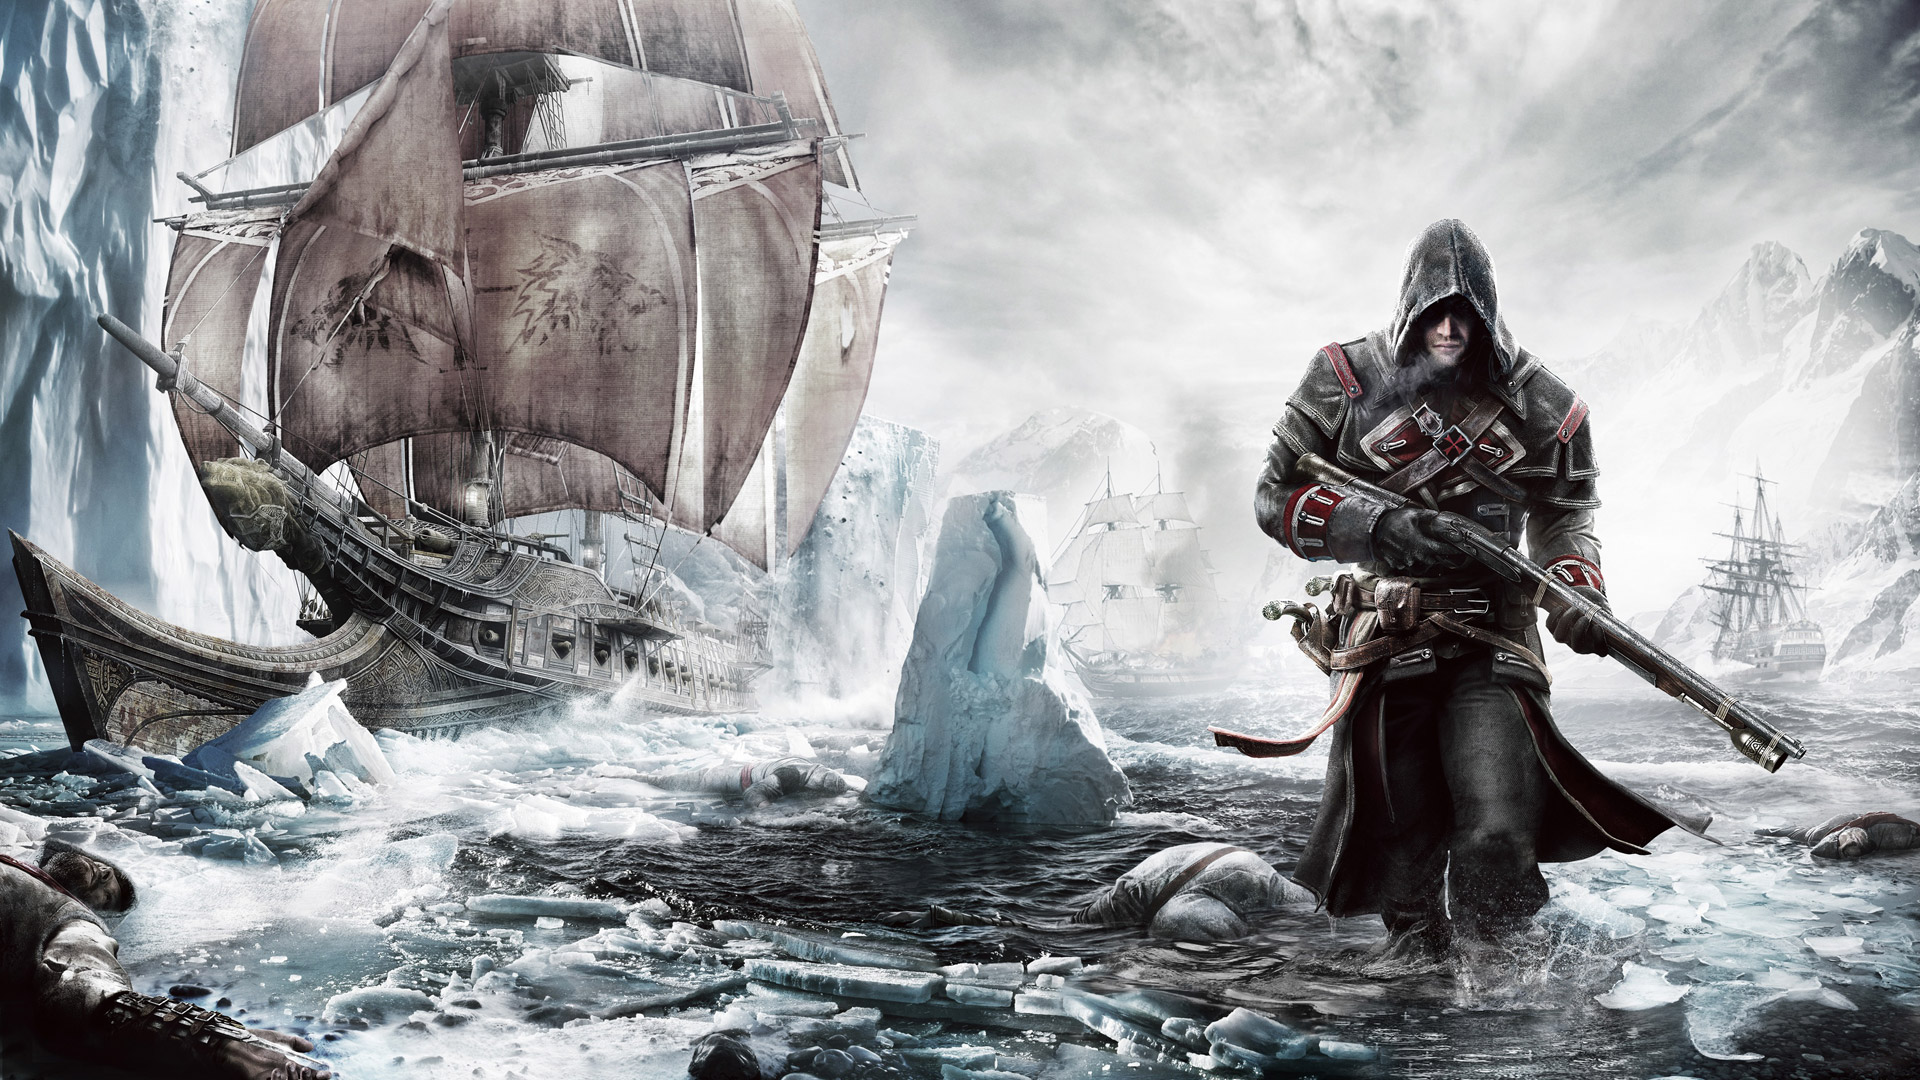 Free Assassin's Creed: Rogue Wallpaper in 1920x1080